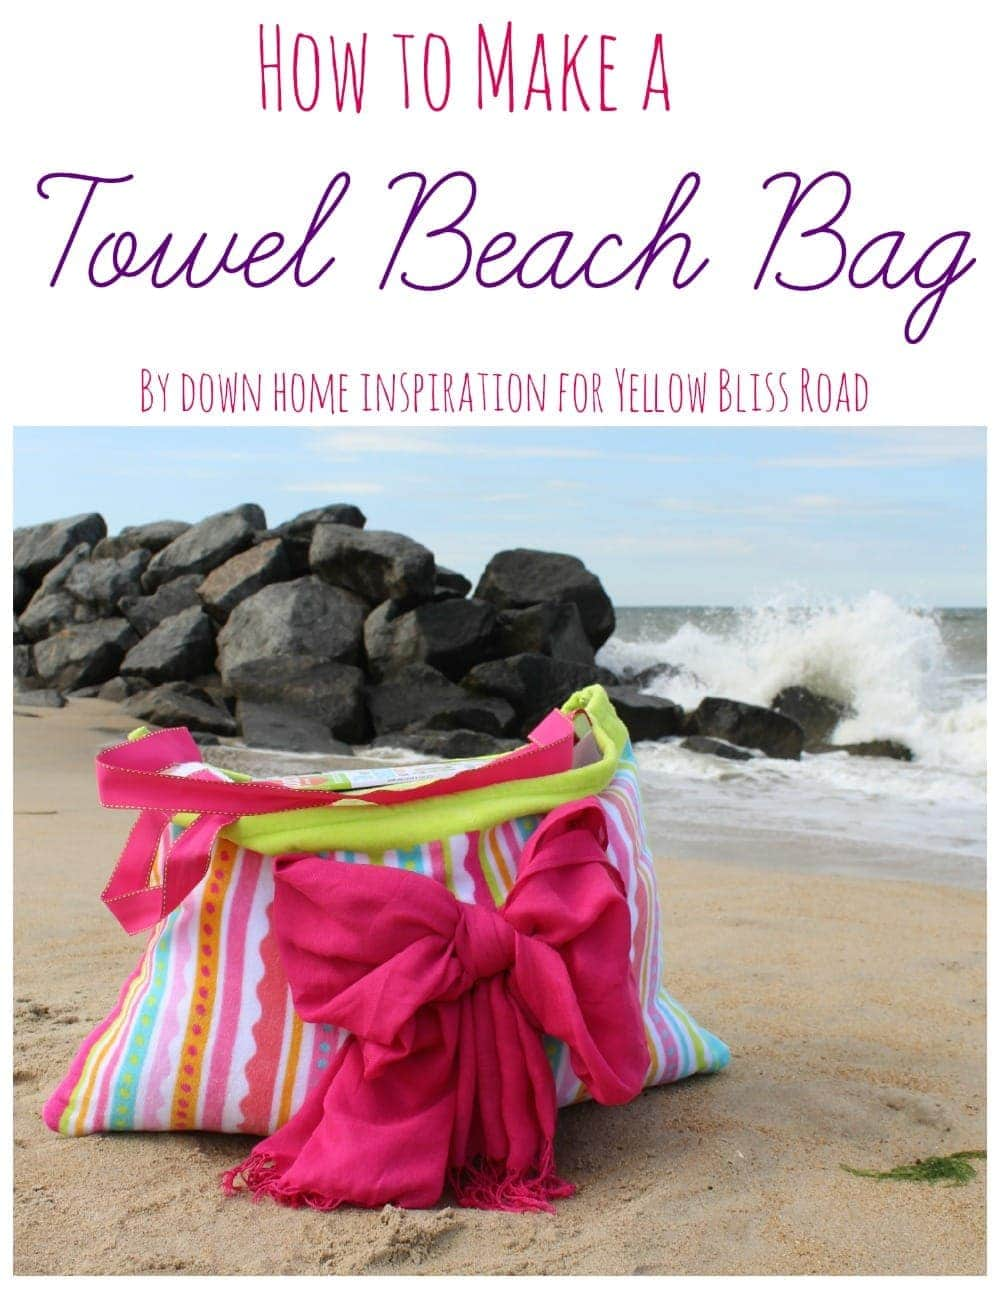 How to Make a Beach Towel Bag - An Easy Tutorial!